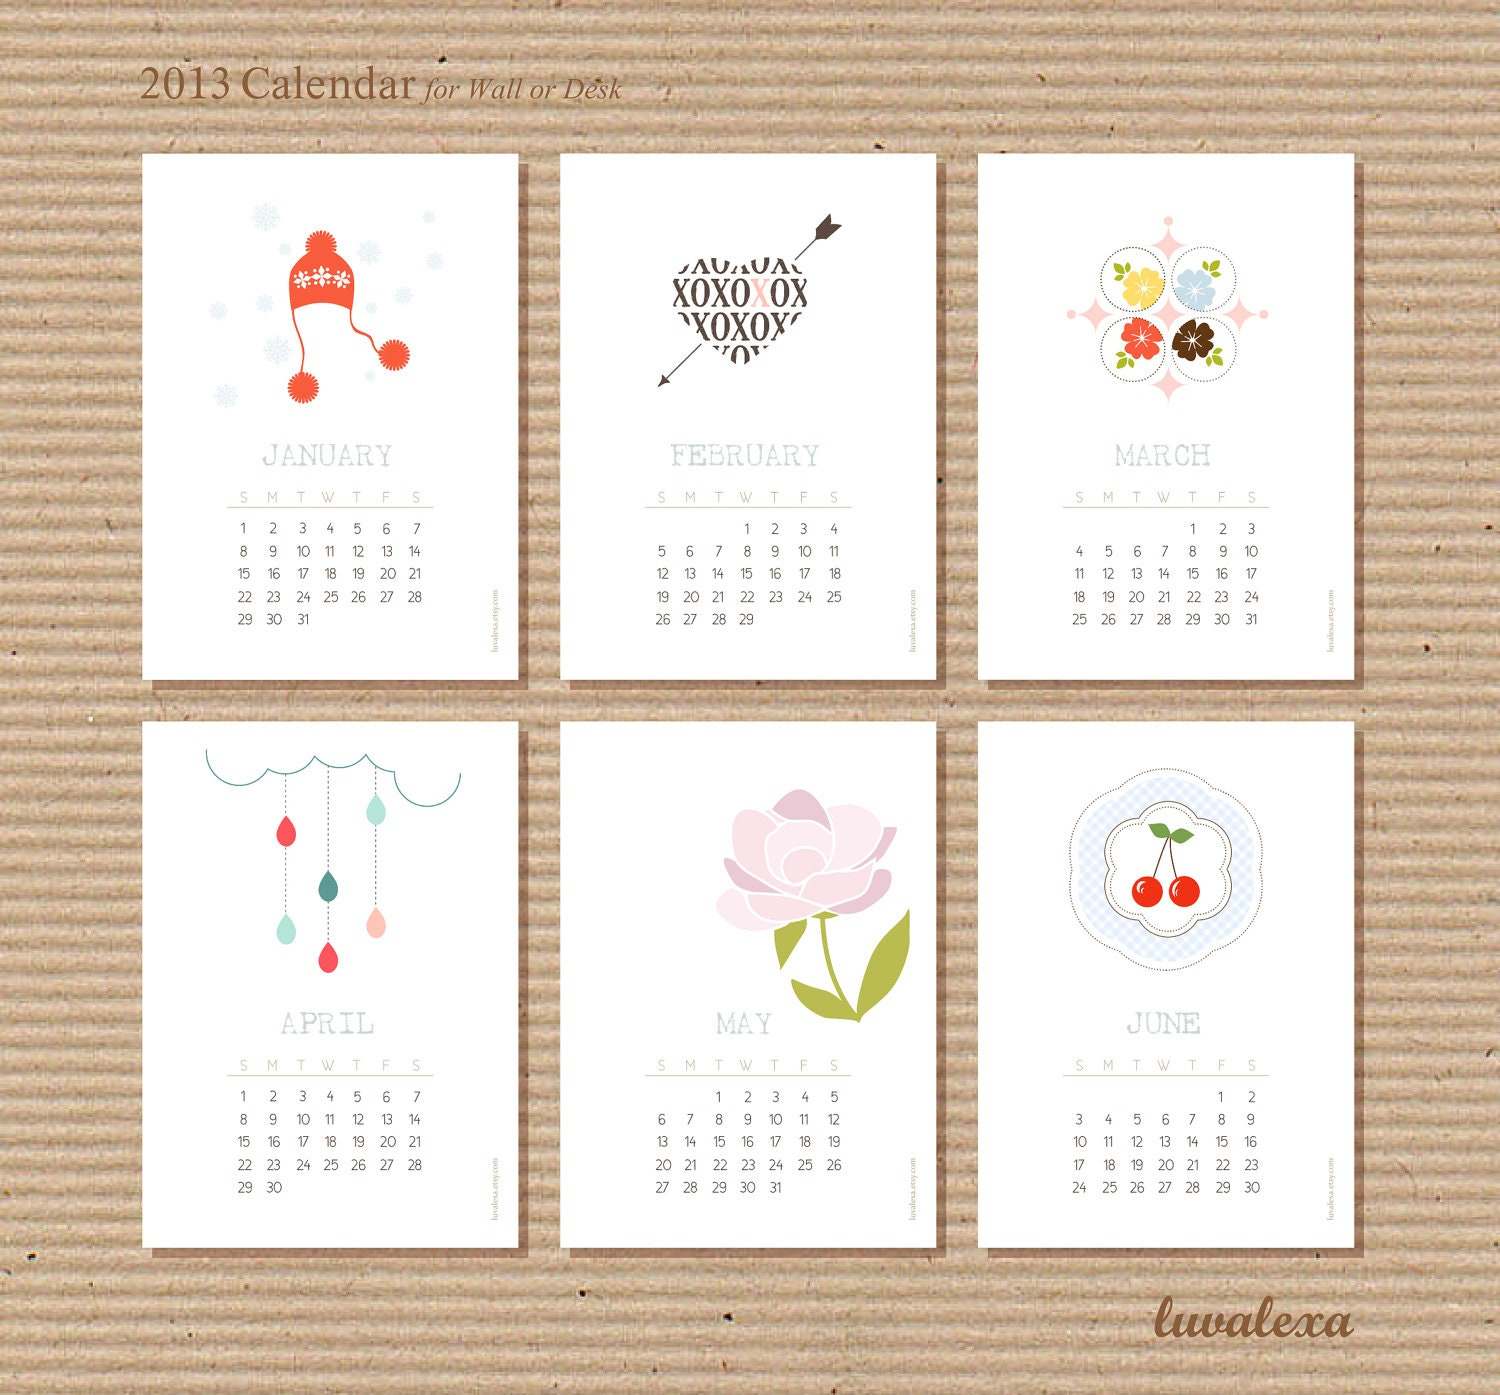 Calendar Number Design : Creatively content graphic art calendar giveaway